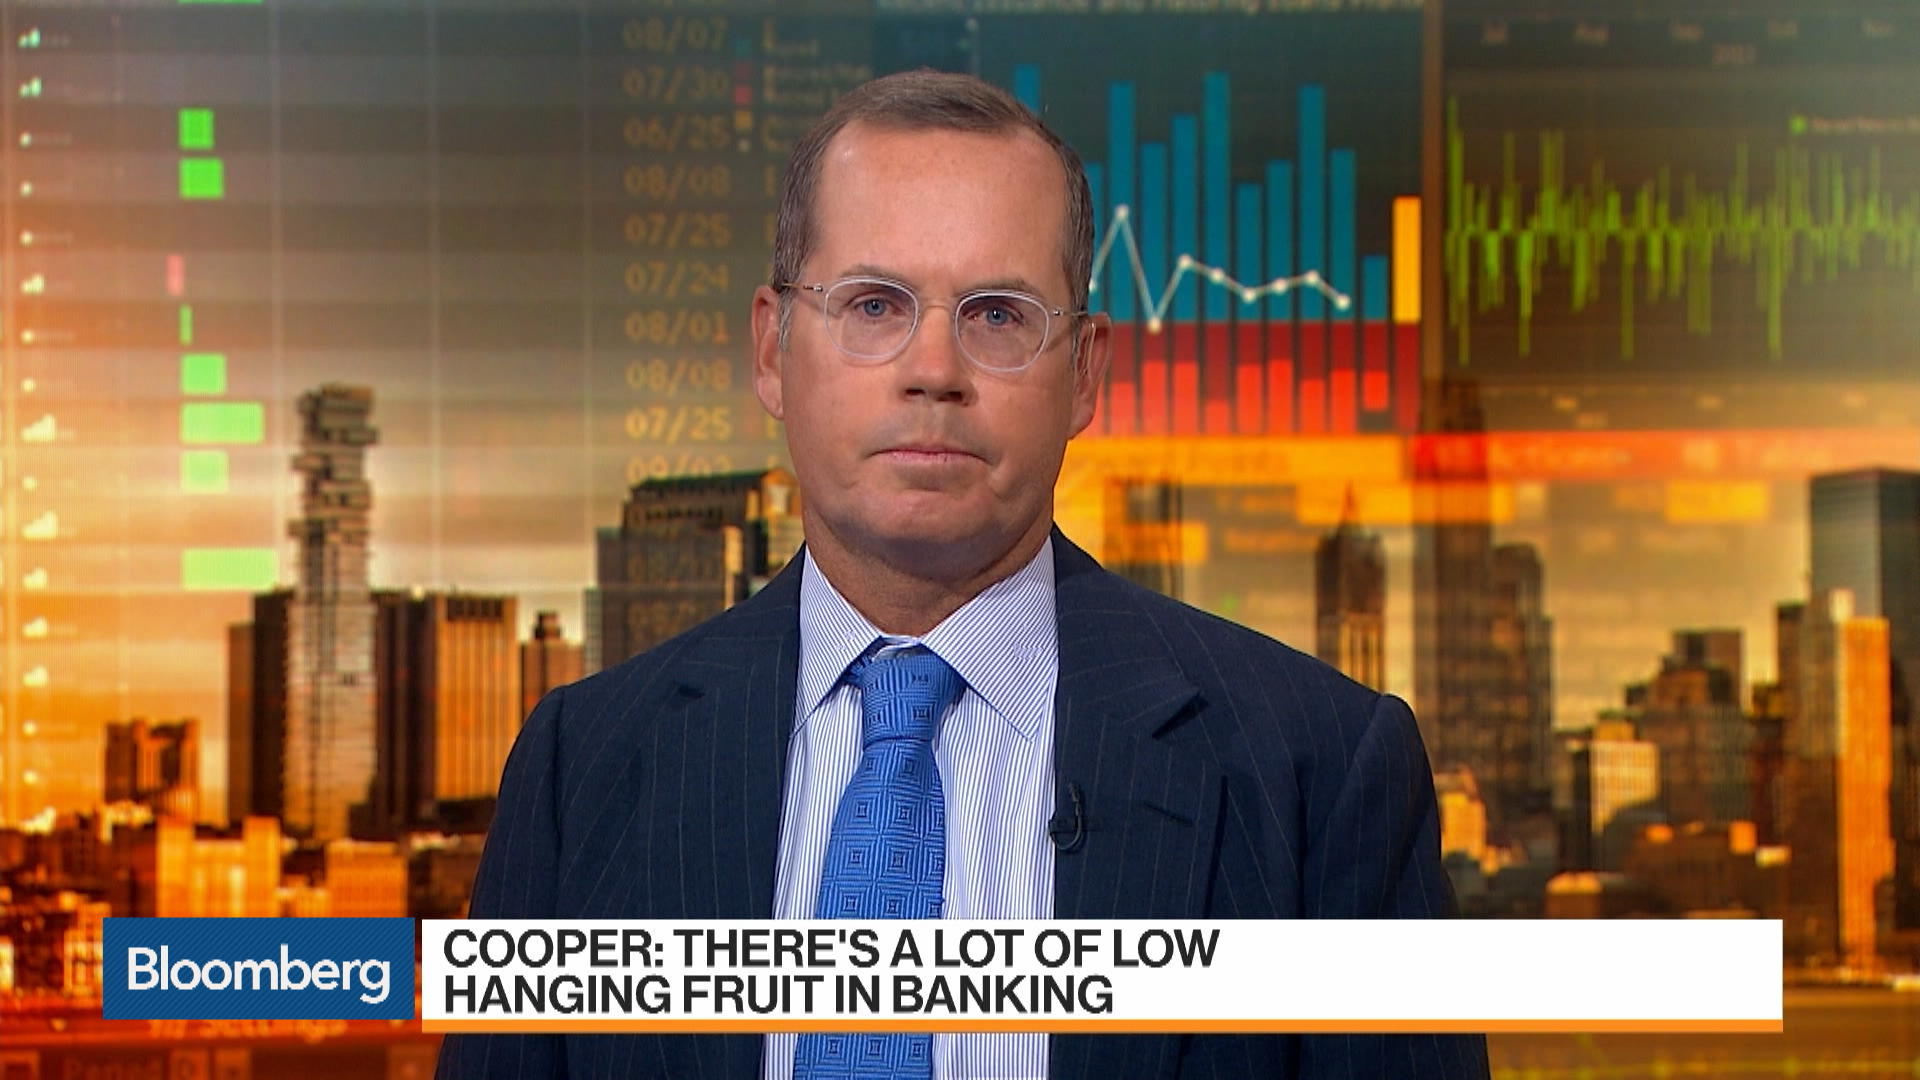 Abbott Cooper Sees a Lot of Low Hanging Fruit in Small Banks